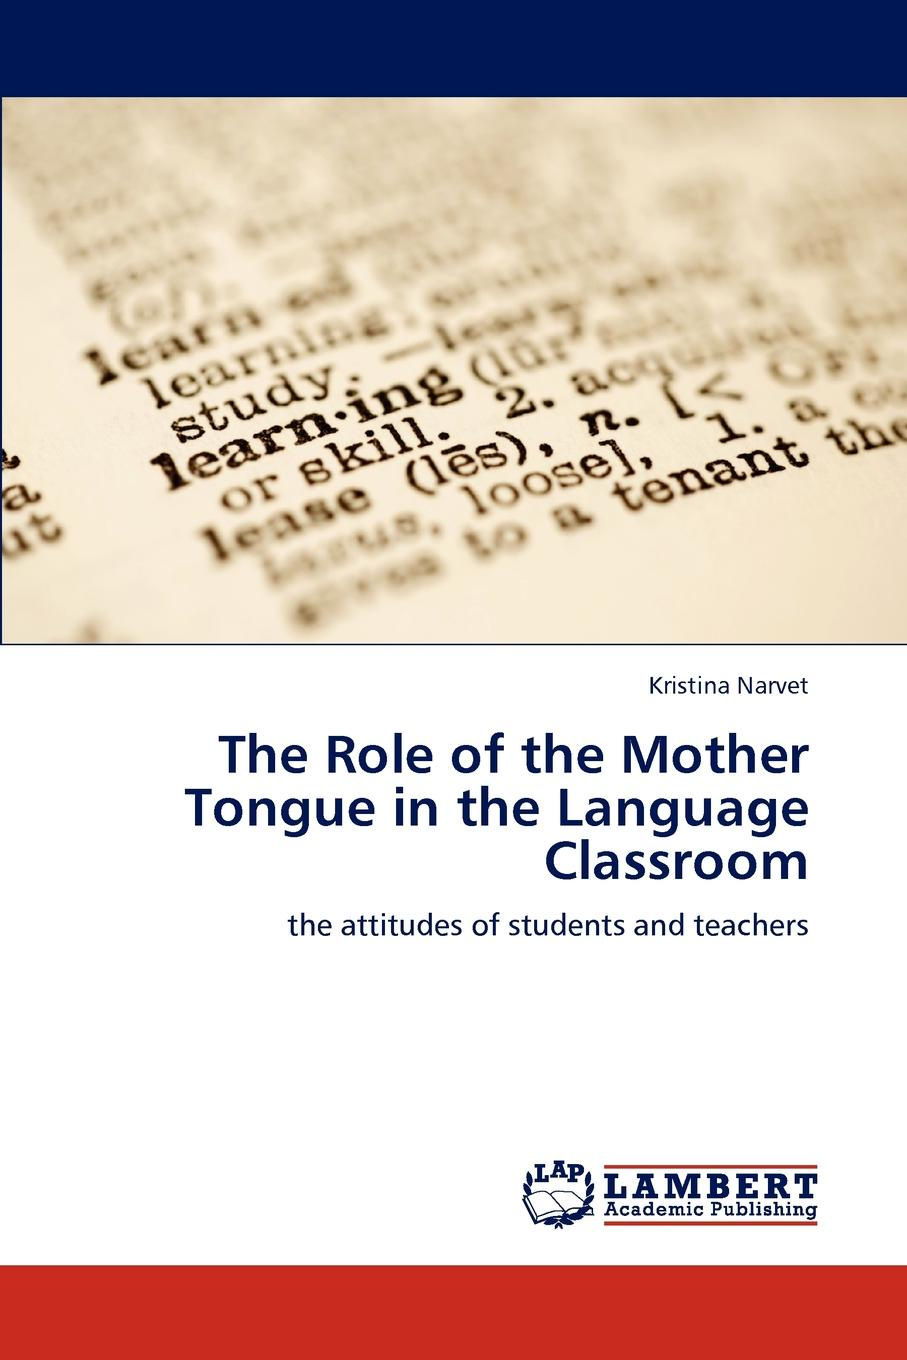 Kristina Narvet The Role of the Mother Tongue in the Language Classroom ambiguity in language use